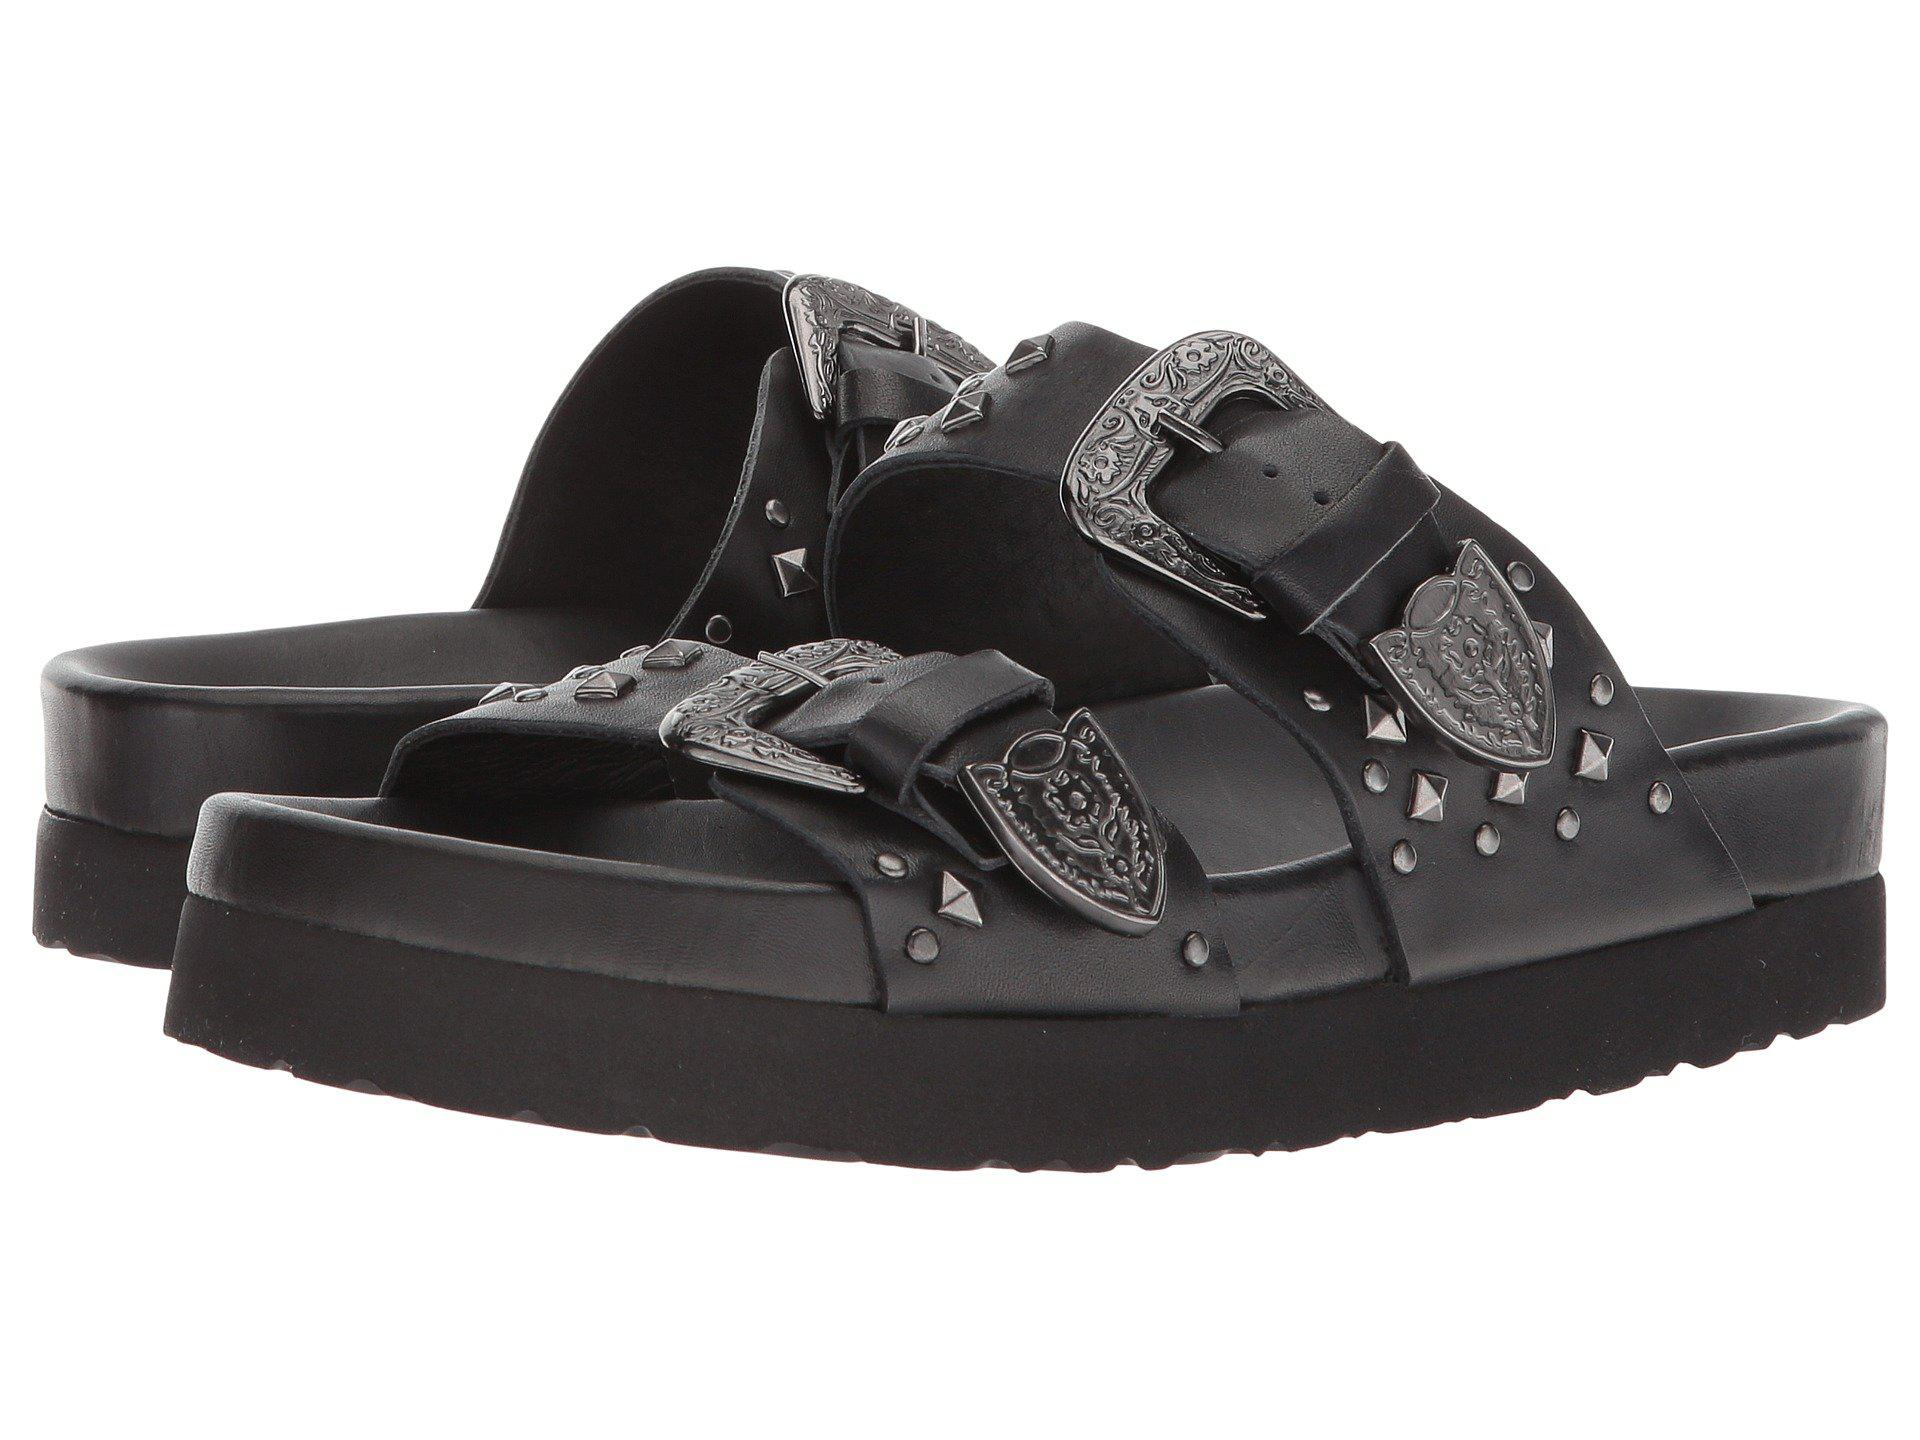 0ad6404cb2c The Kooples Leather Sandal With Studs in Black - Lyst